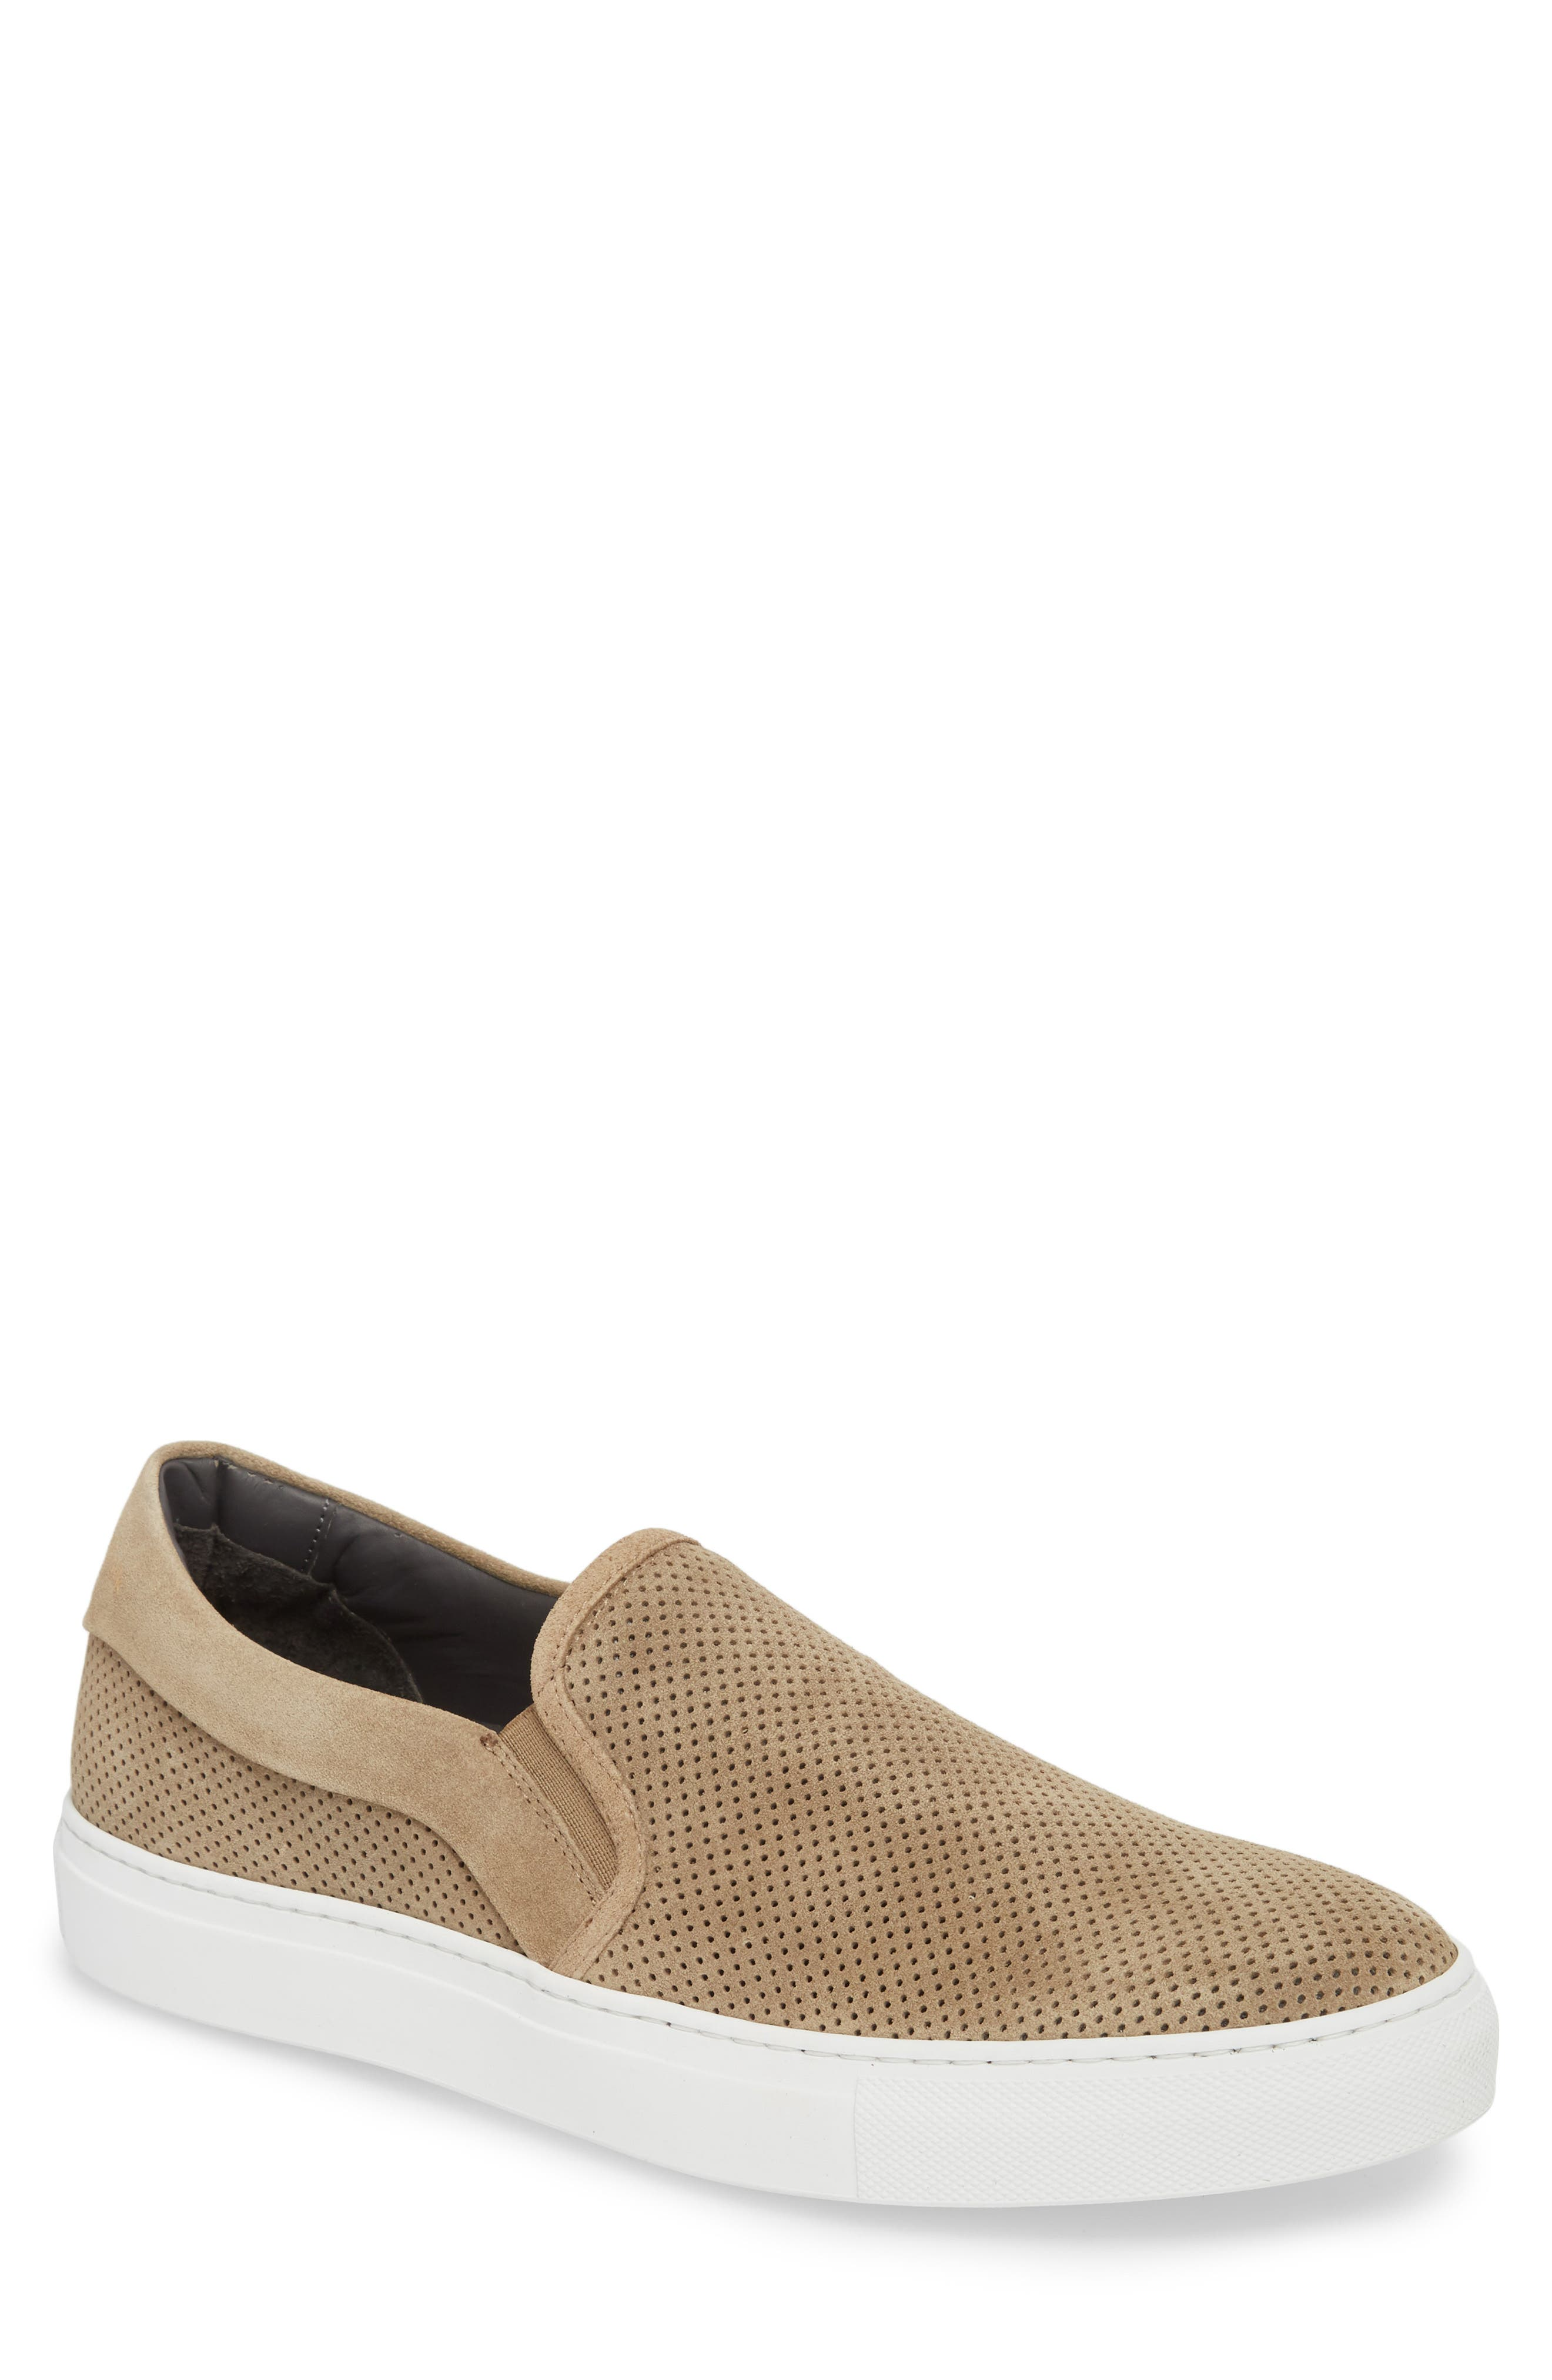 Buelton Perforated Slip-On Sneaker,                             Main thumbnail 1, color,                             BROWN SUEDE